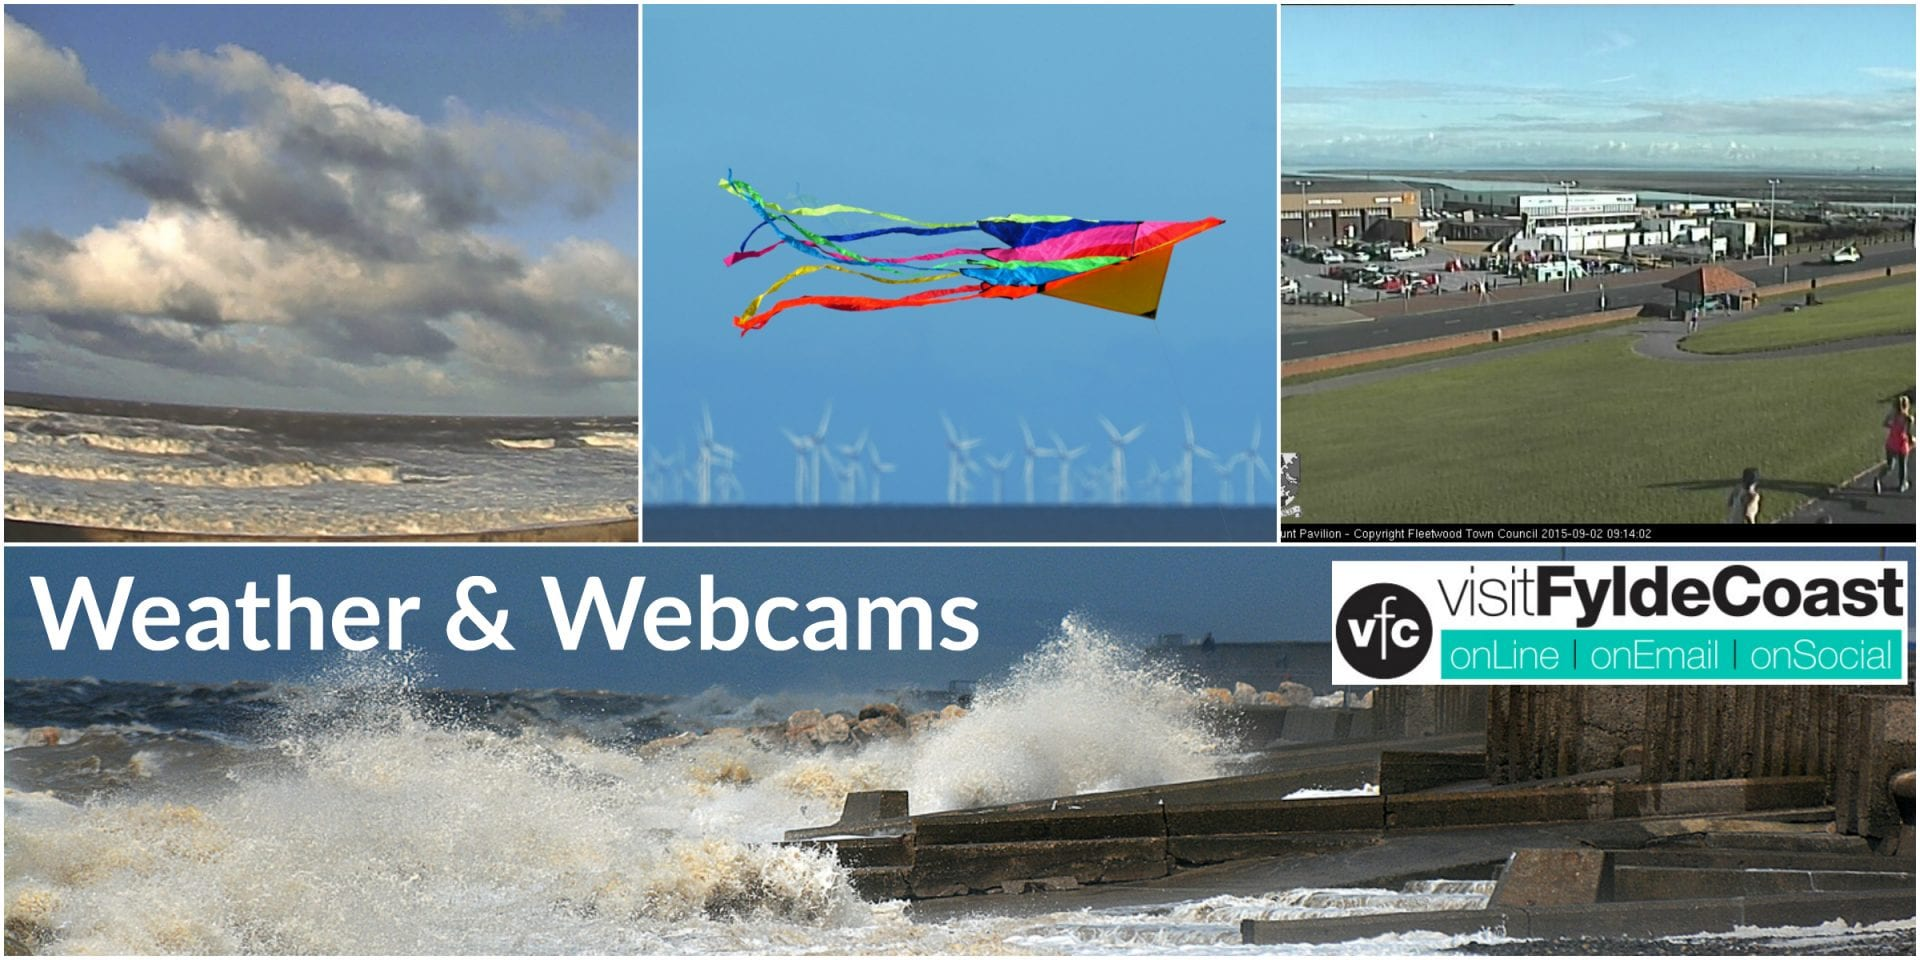 Watch the Fylde Coast with webcams live from the seafront. Plus lots of local weather information.